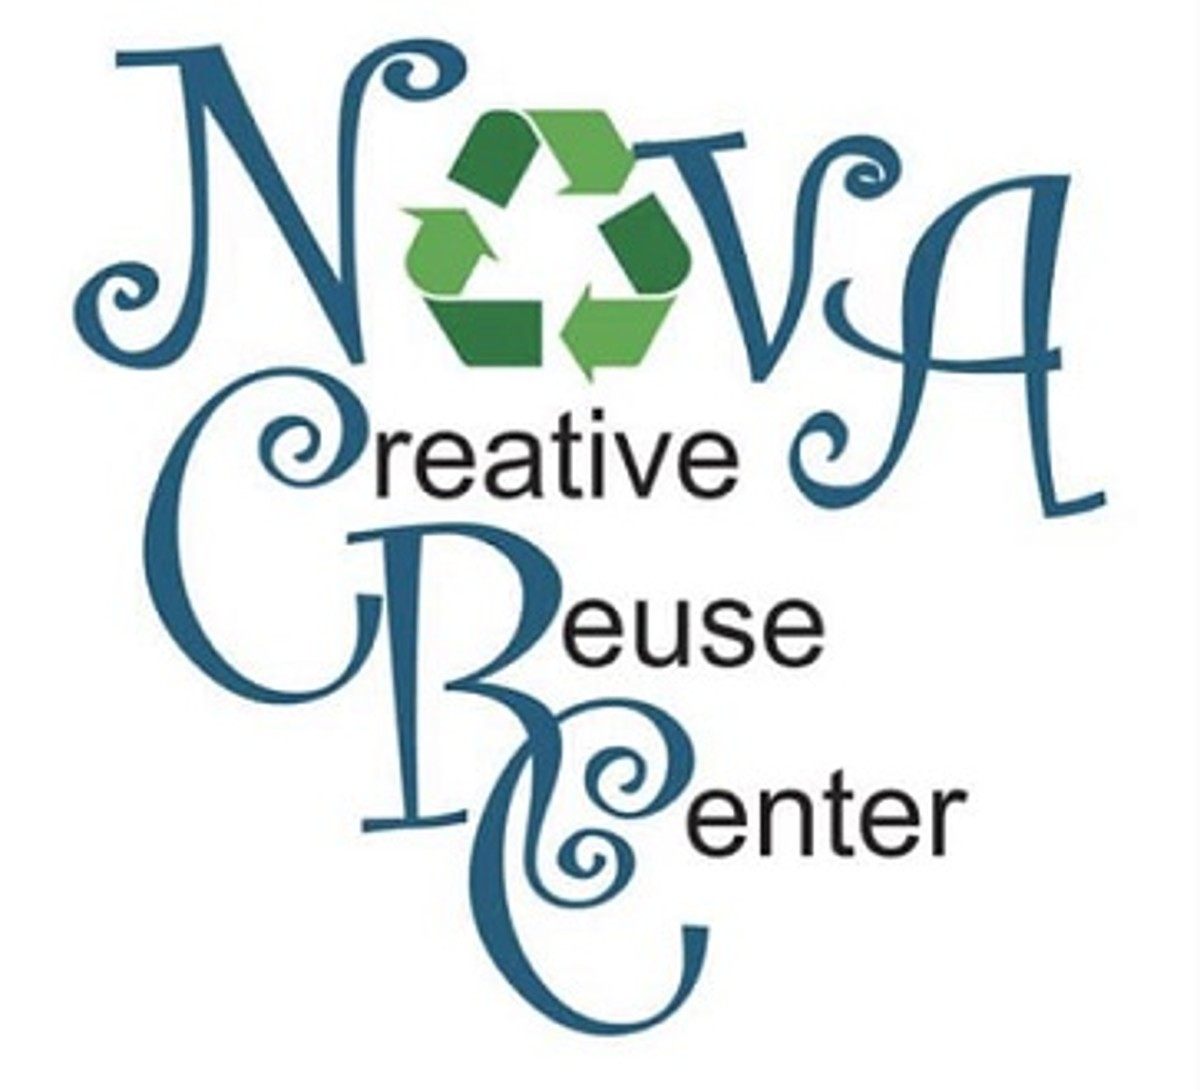 NOVA Creative Reuse Center